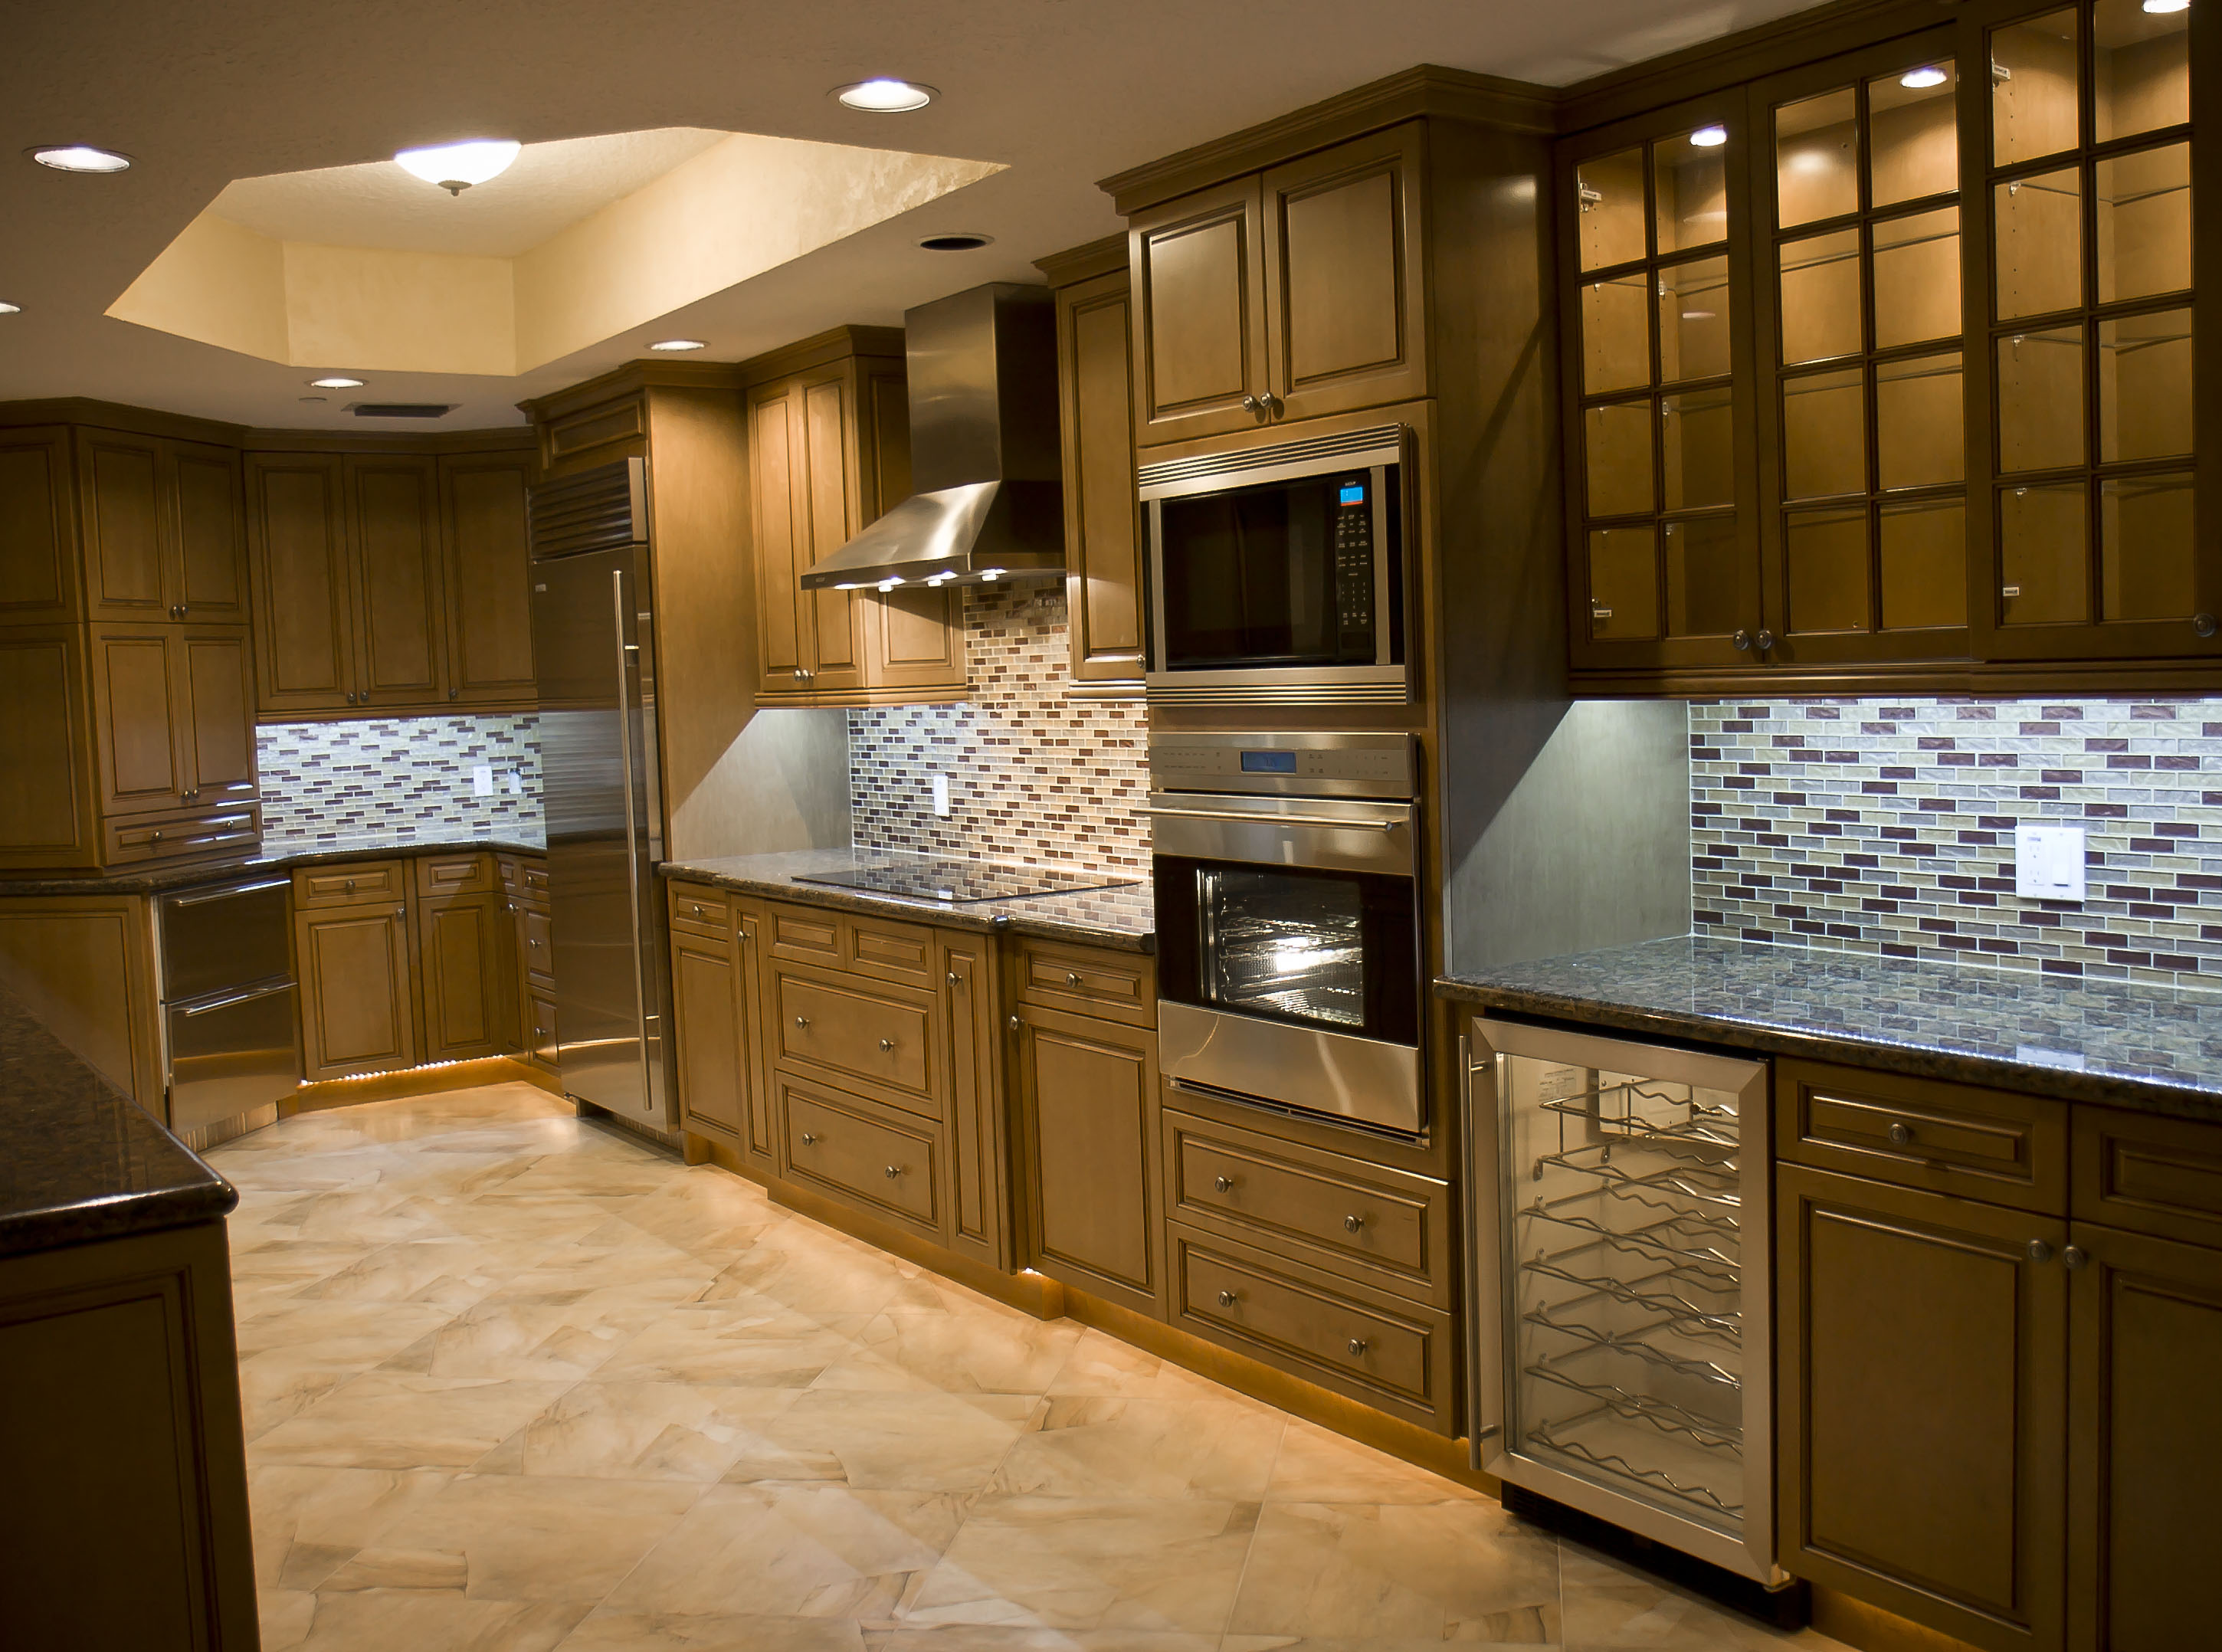 Kitchen Remodel With Wolf And Sub Zero Appliances